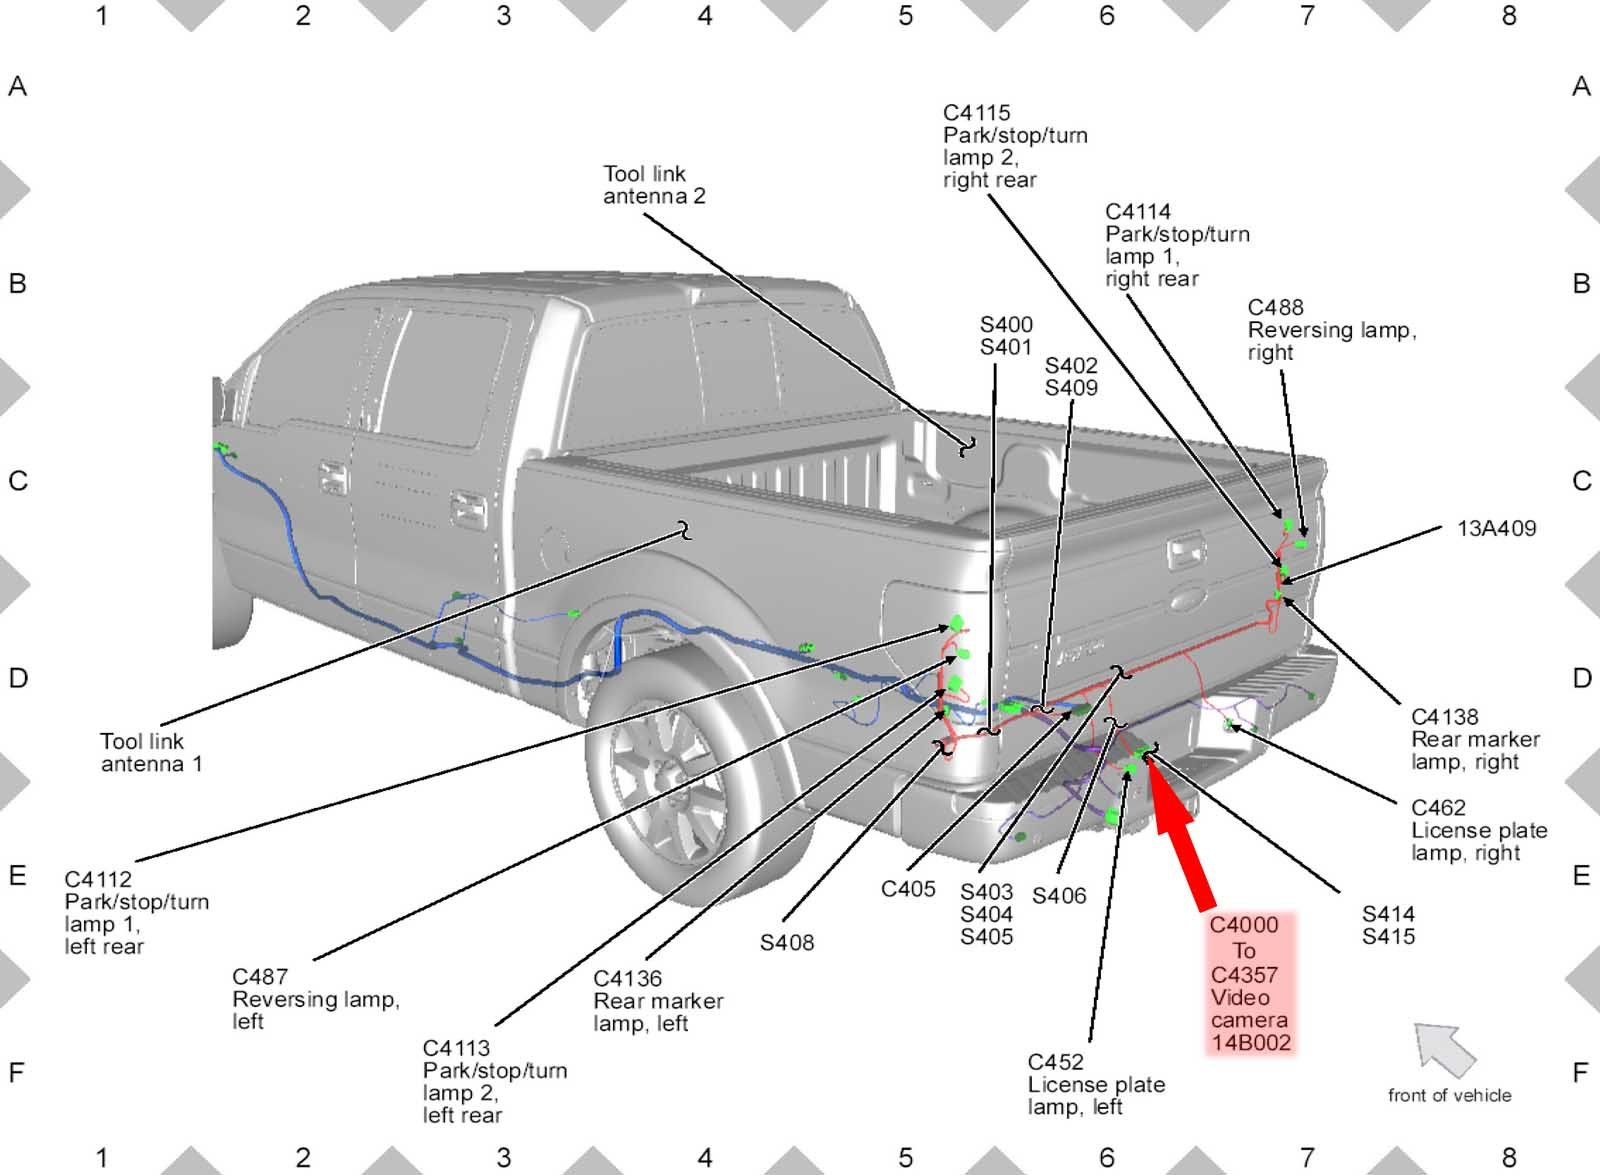 Ford F150 F250 Install Rearview Backup Camera How To - Ford-Trucks - 2013 Ford F250 Trailer Plug Wiring Diagram